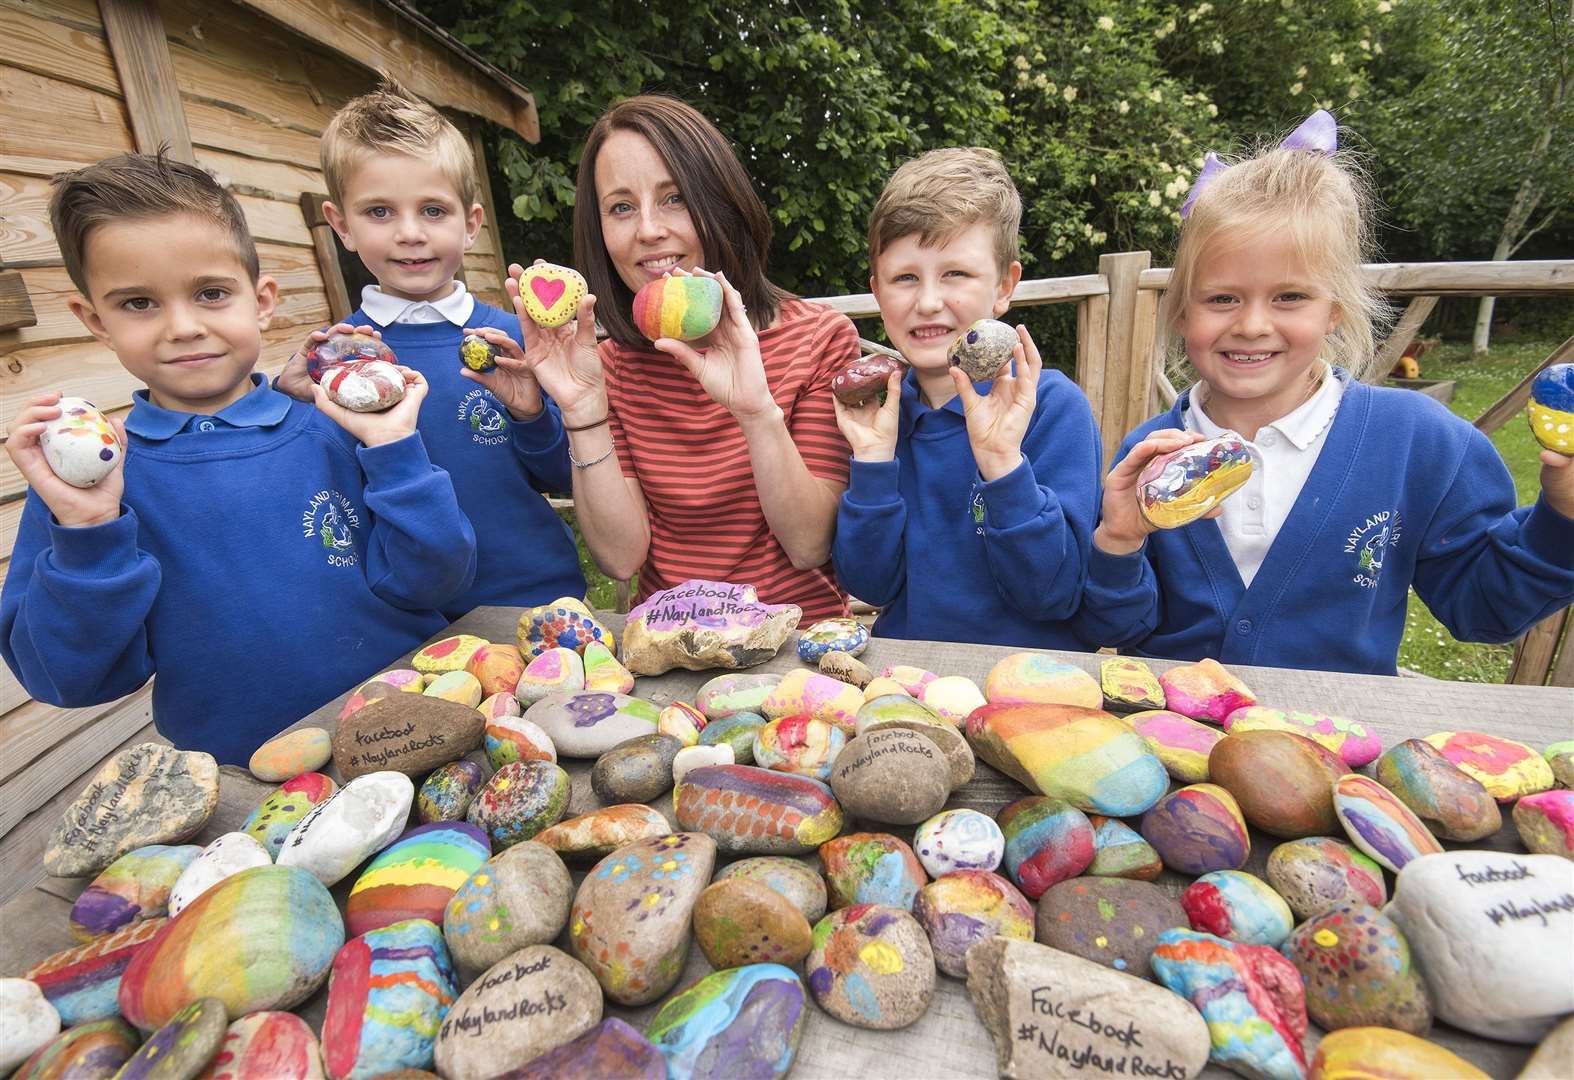 Nayland Primary School hopes to send painted rocks around the world